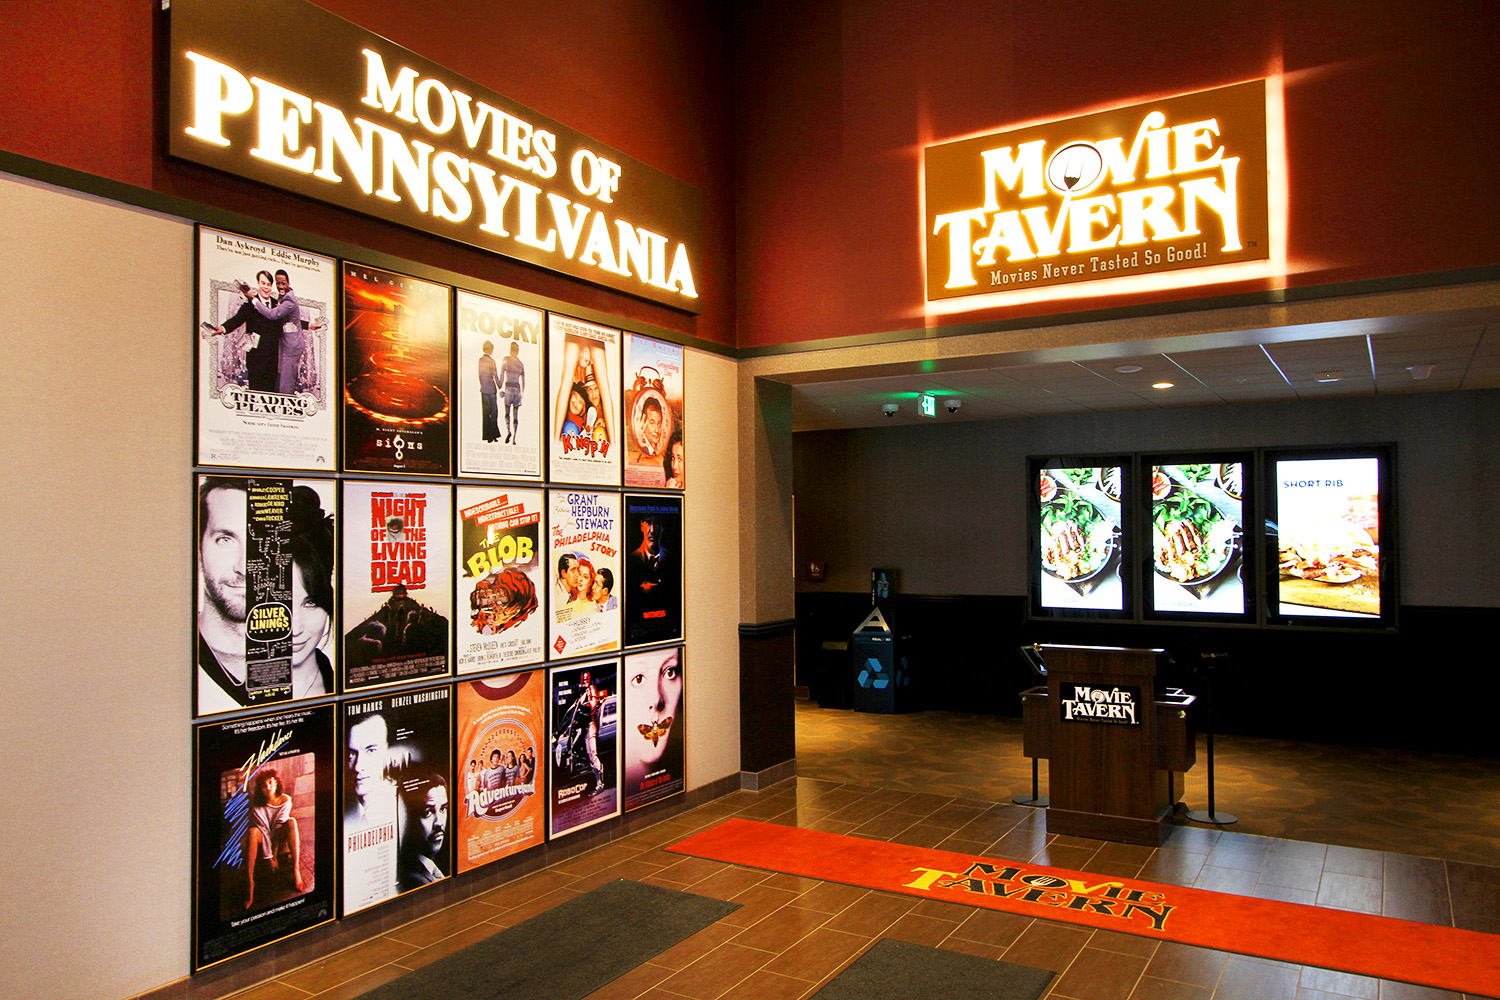 17069_00_movietavern_trexlerton_N75